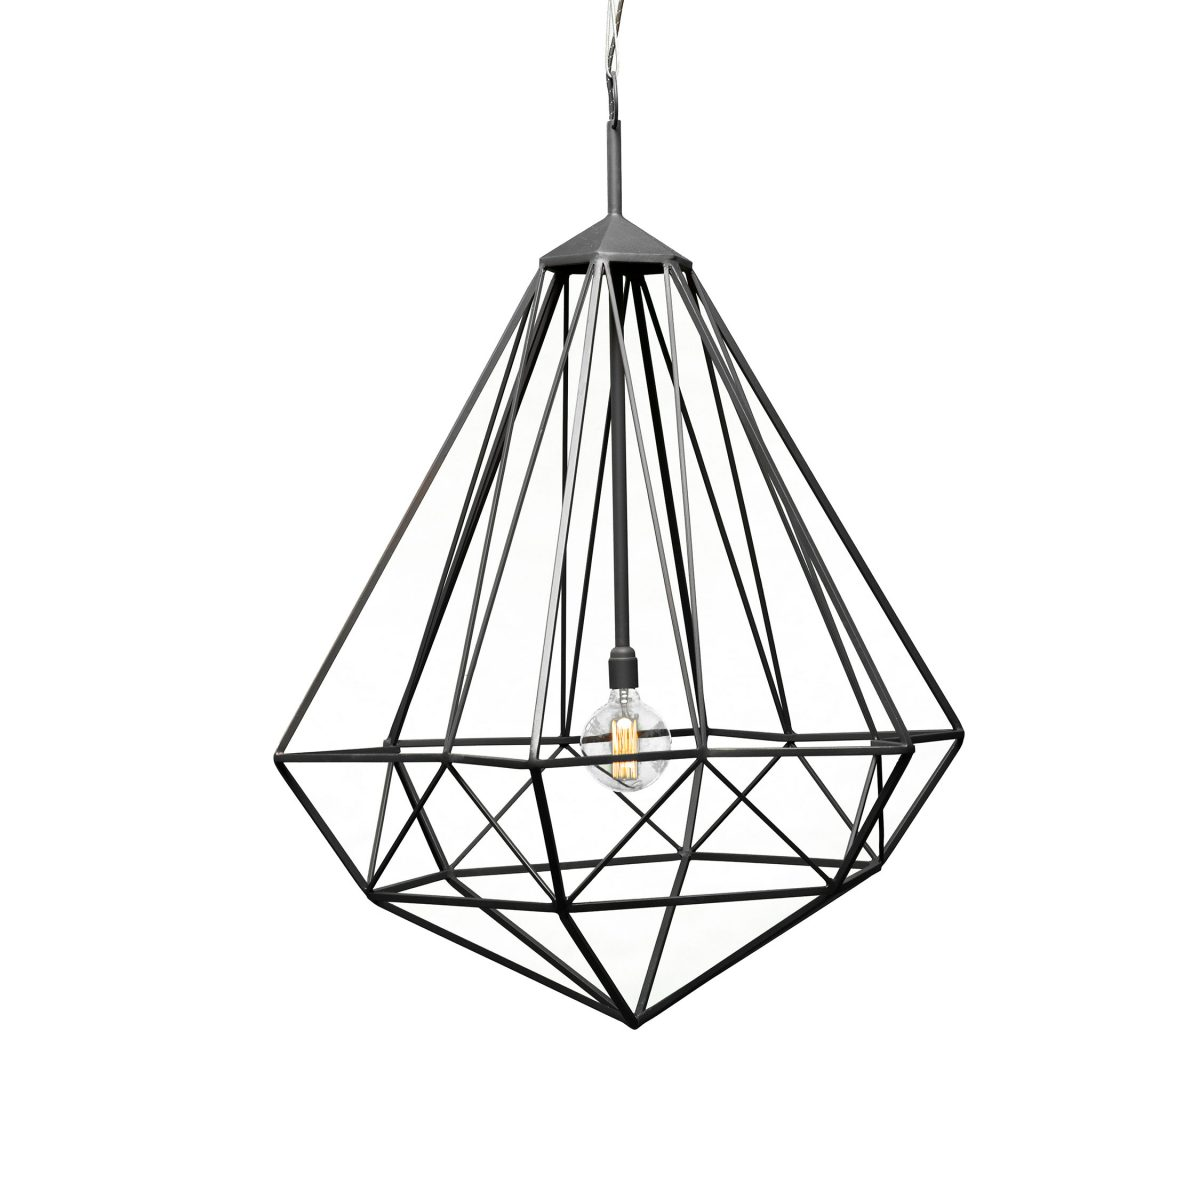 Diamond XXL medium hanglamp JSPR—Gimmii